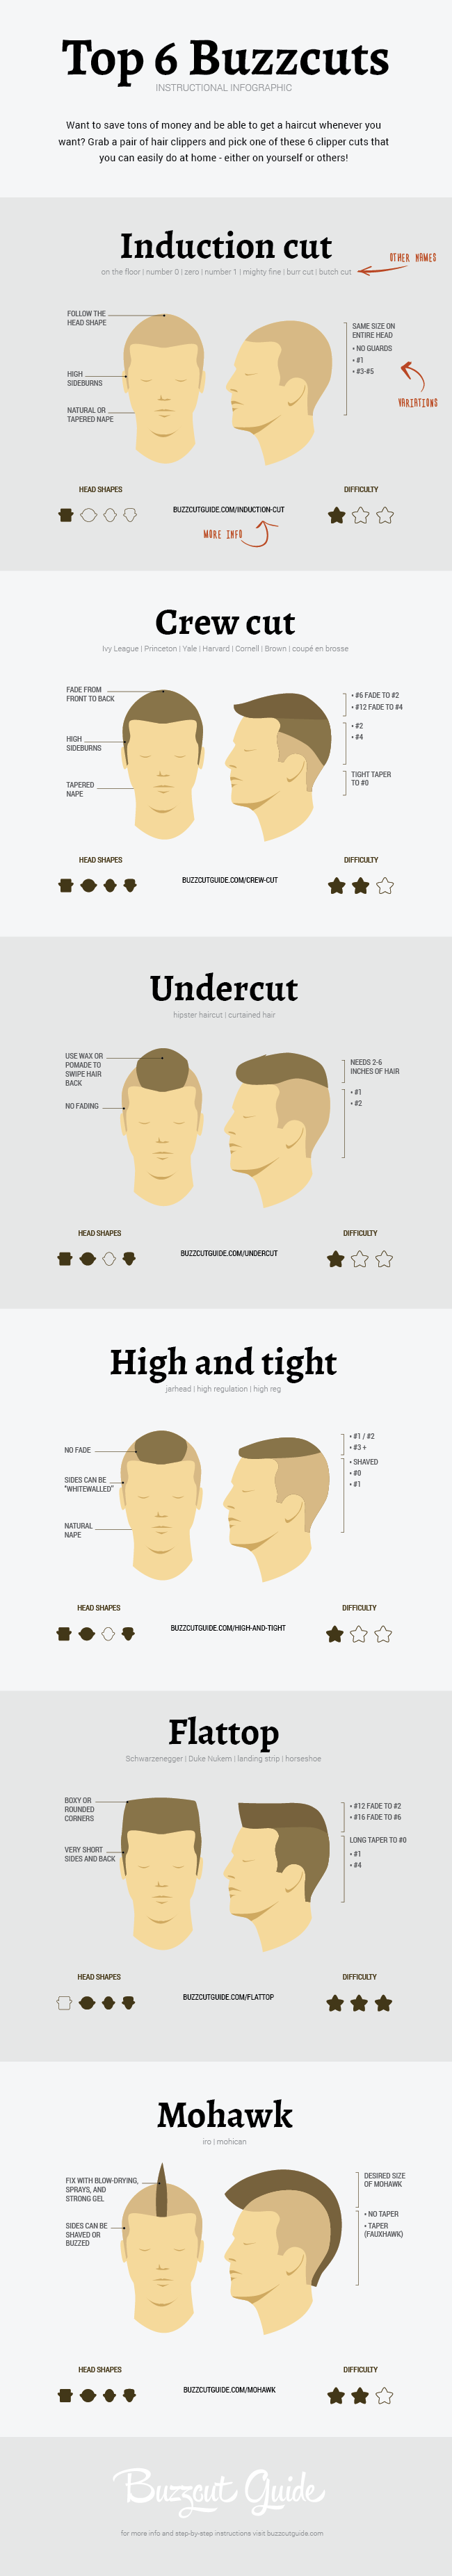 the ultimate guide to hair clipper sizes buzzcut guide. Black Bedroom Furniture Sets. Home Design Ideas